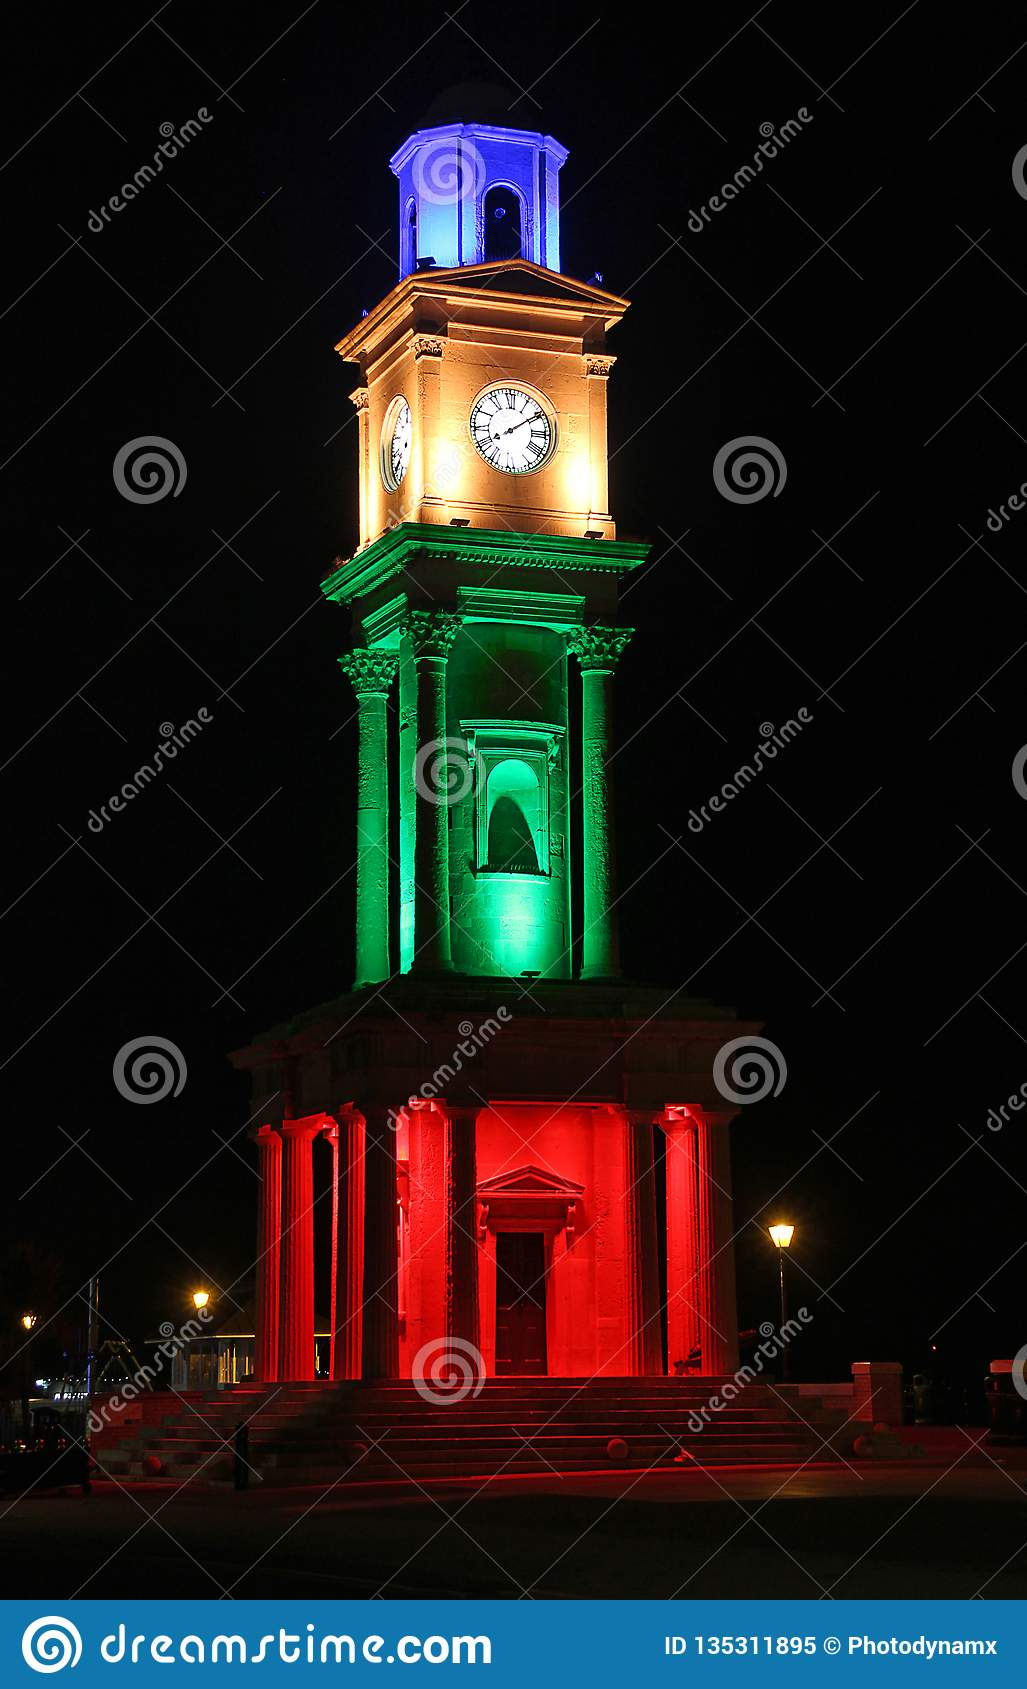 Herne bay victorian clock tower illuminated